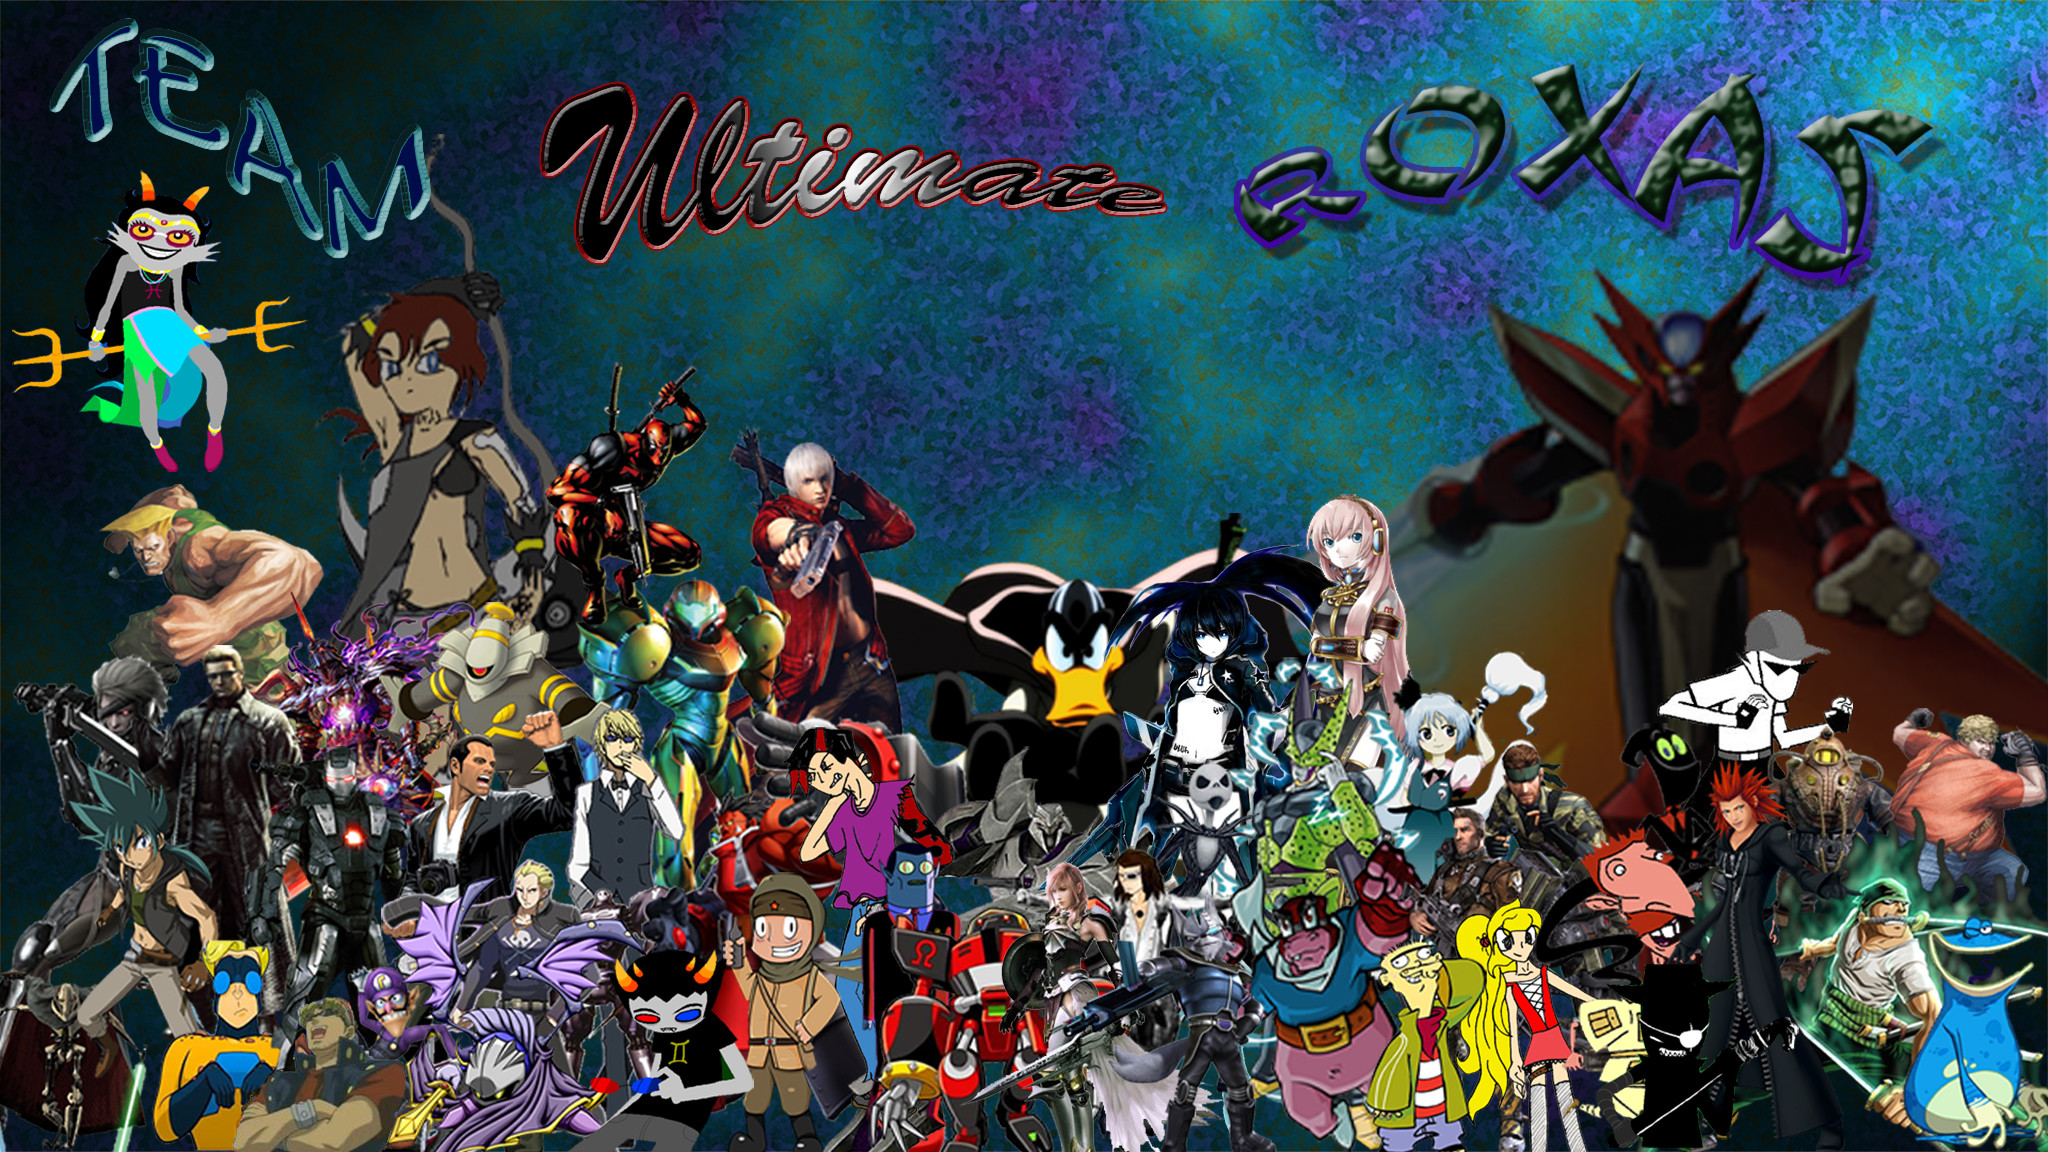 My Favorite Characters Wallpaper by DeCremer My Favorite Characters  Wallpaper by DeCremer